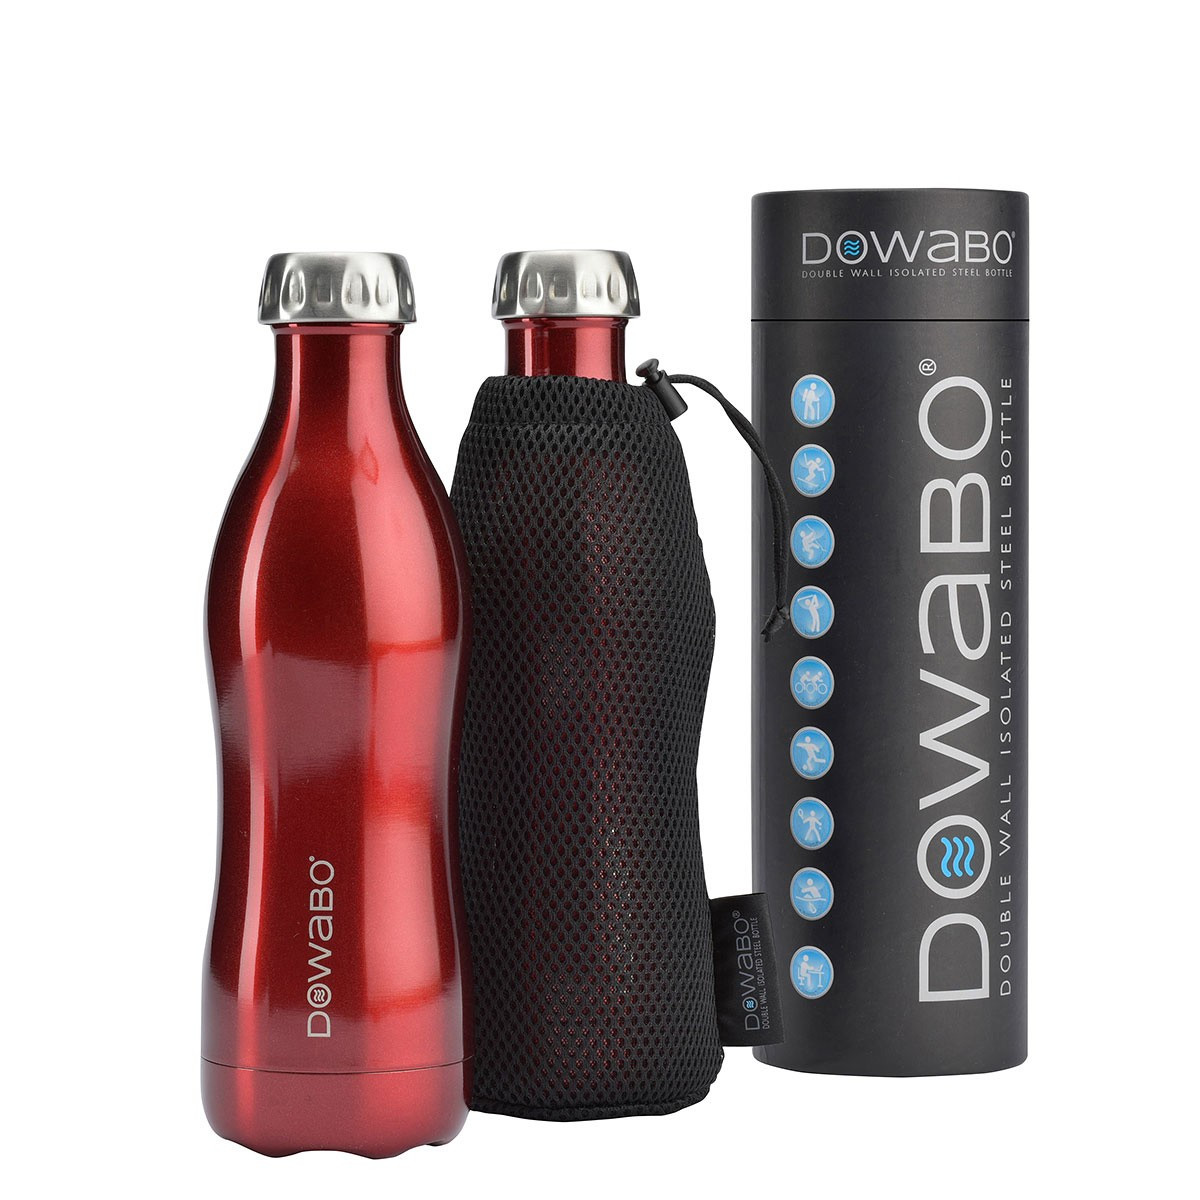 DOWABO® Bottle - Silver 500ml Metallic Collection